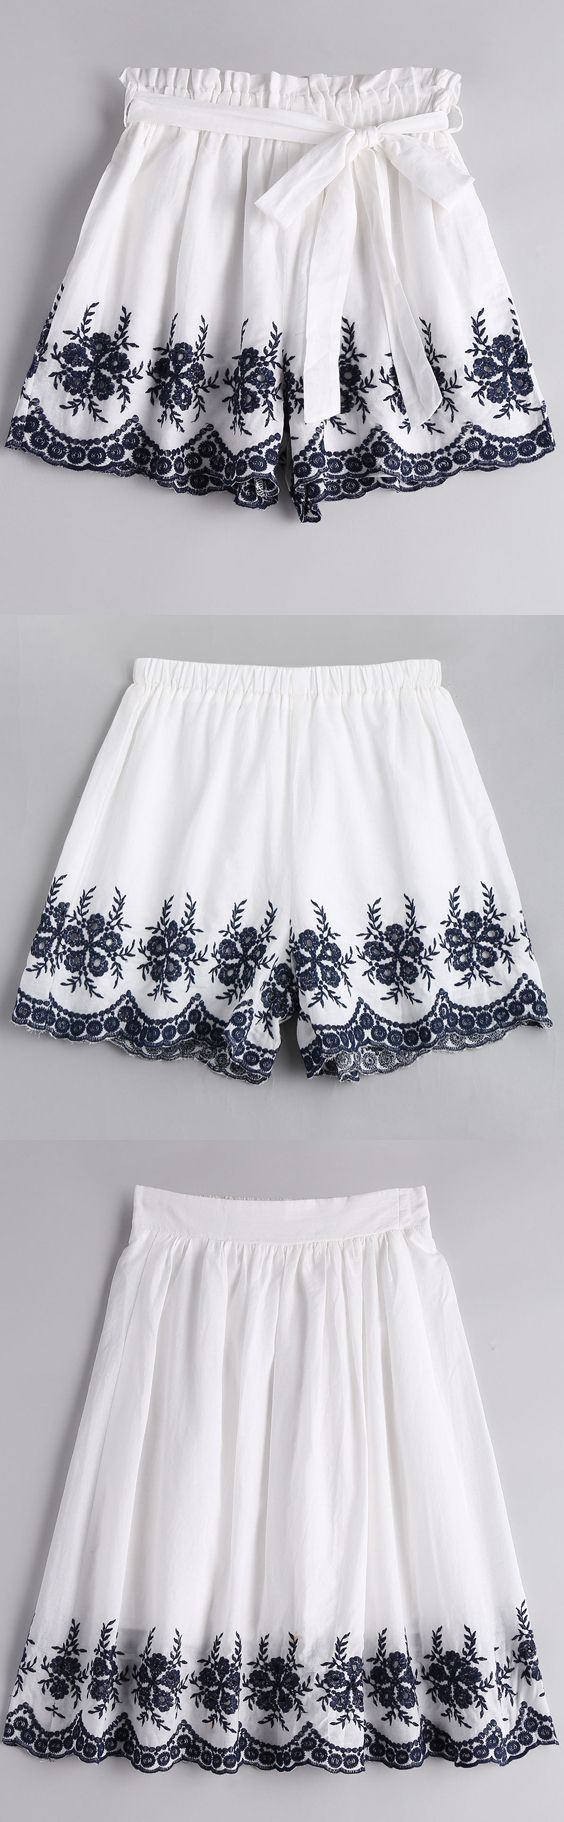 Up to 70% OFF! Floral Embroidered High Waist Belted Shorts. Zaful, zaful.com, bottoms,shorts,shorts outfits,shorts and tights,shorts outfits women,denim,denim shorts,women shorts,high waisted shorts, jean shorts, boyfriend shorts, dressy shorts, ripped jean shorts, womens khaki shorts, cut off jean shorts, knee length shorts,winter outfits,winter fashion,fall outfits,fall fashion, halloween costumes,halloween,halloween outfits. @zaful Extra 10% OFF Code:ZF2017